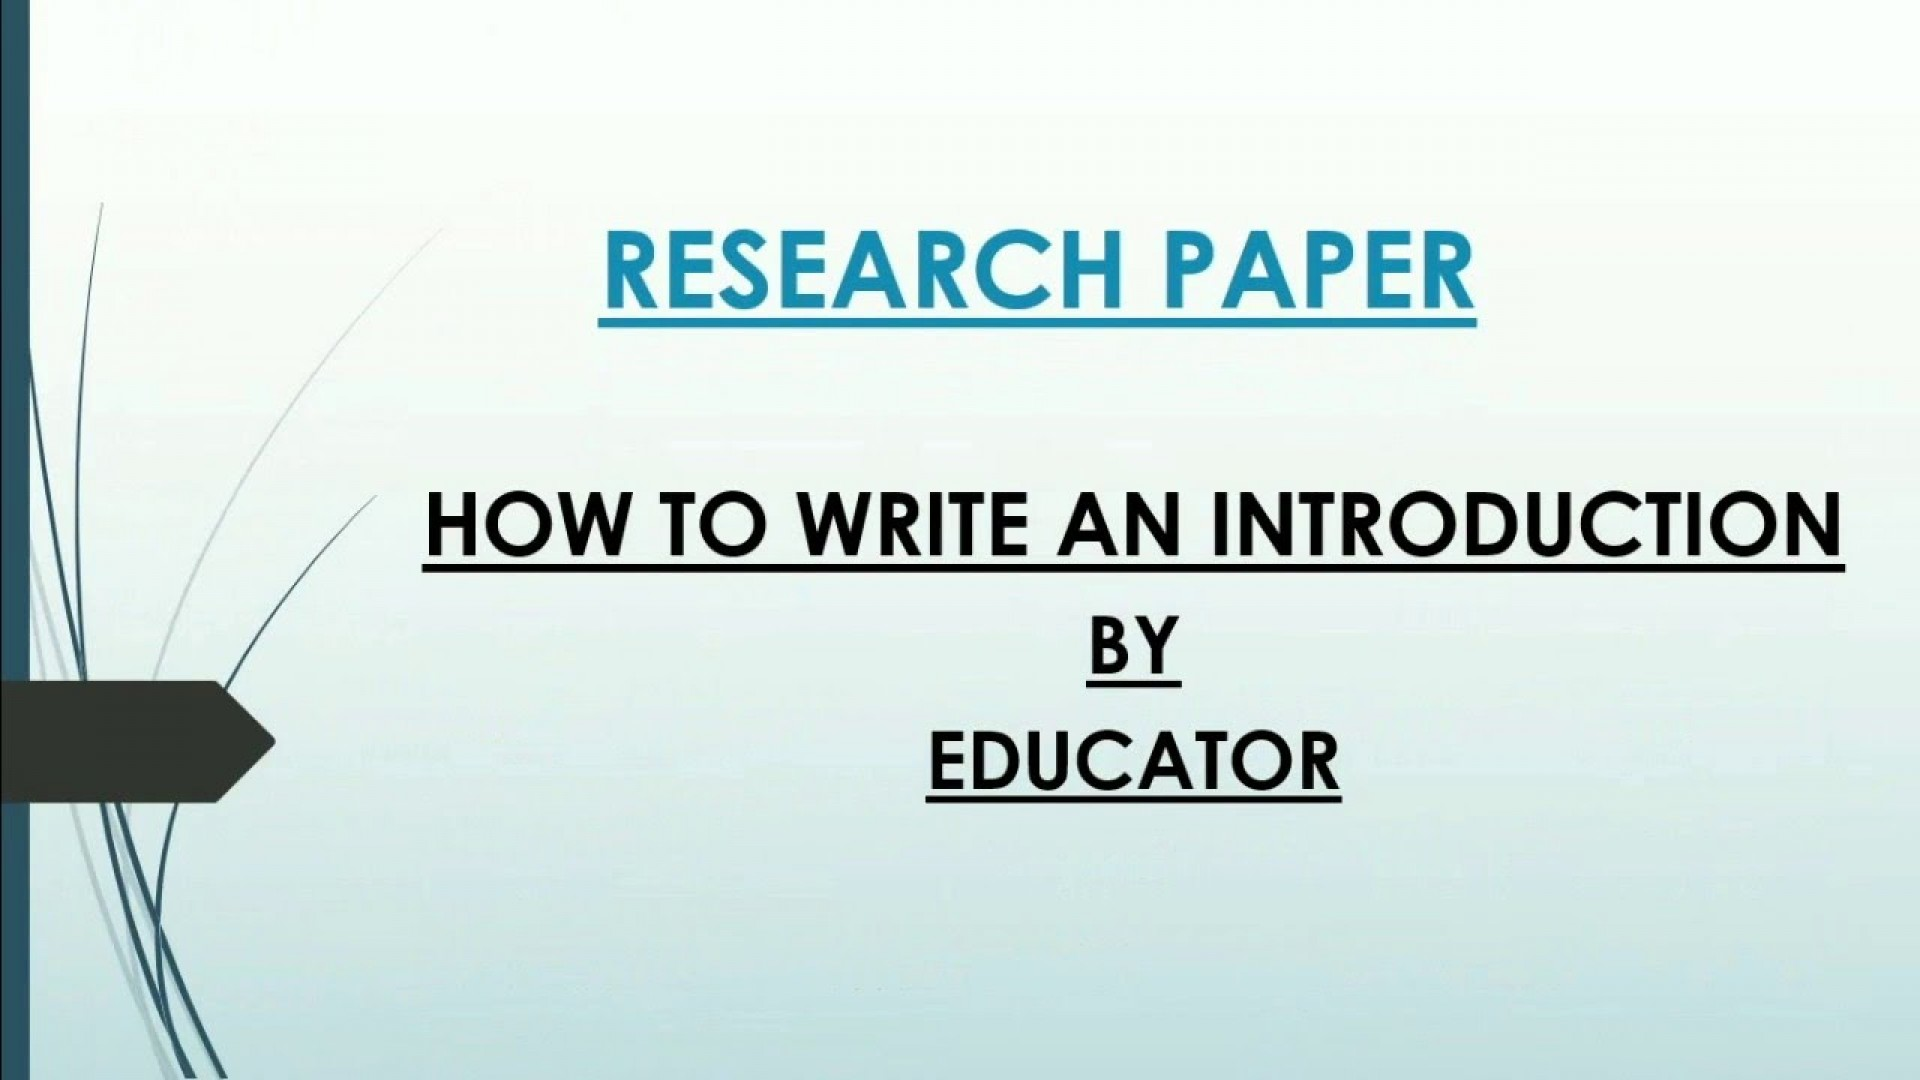 015 Writing An Introduction To Research Paper Top A Intro Steps In 1920